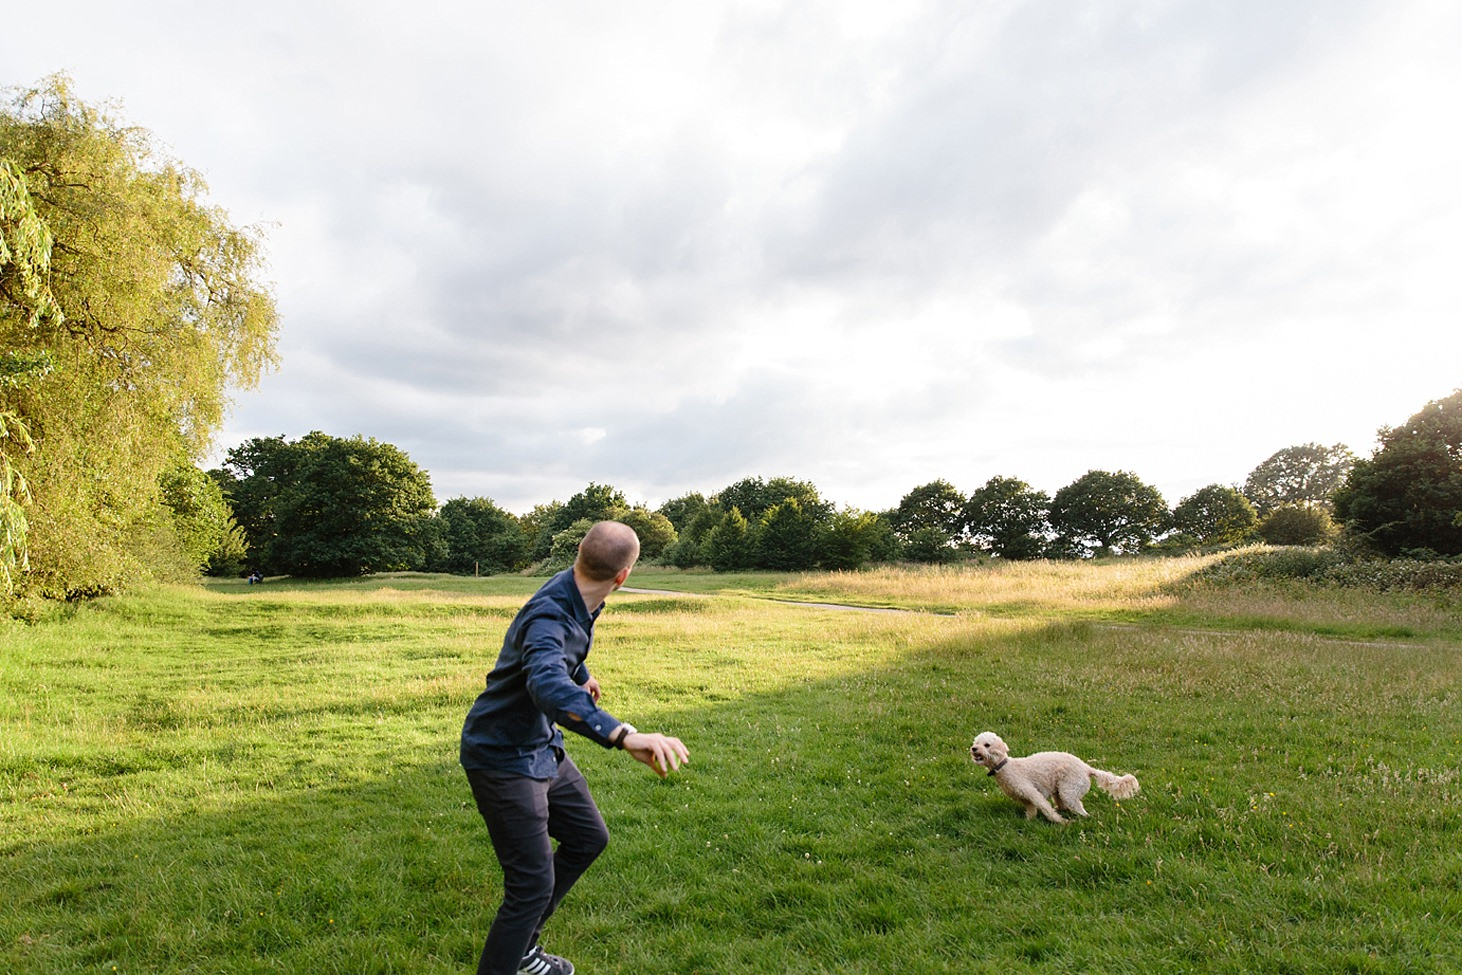 trent park engagement shoot throwing ball for dog